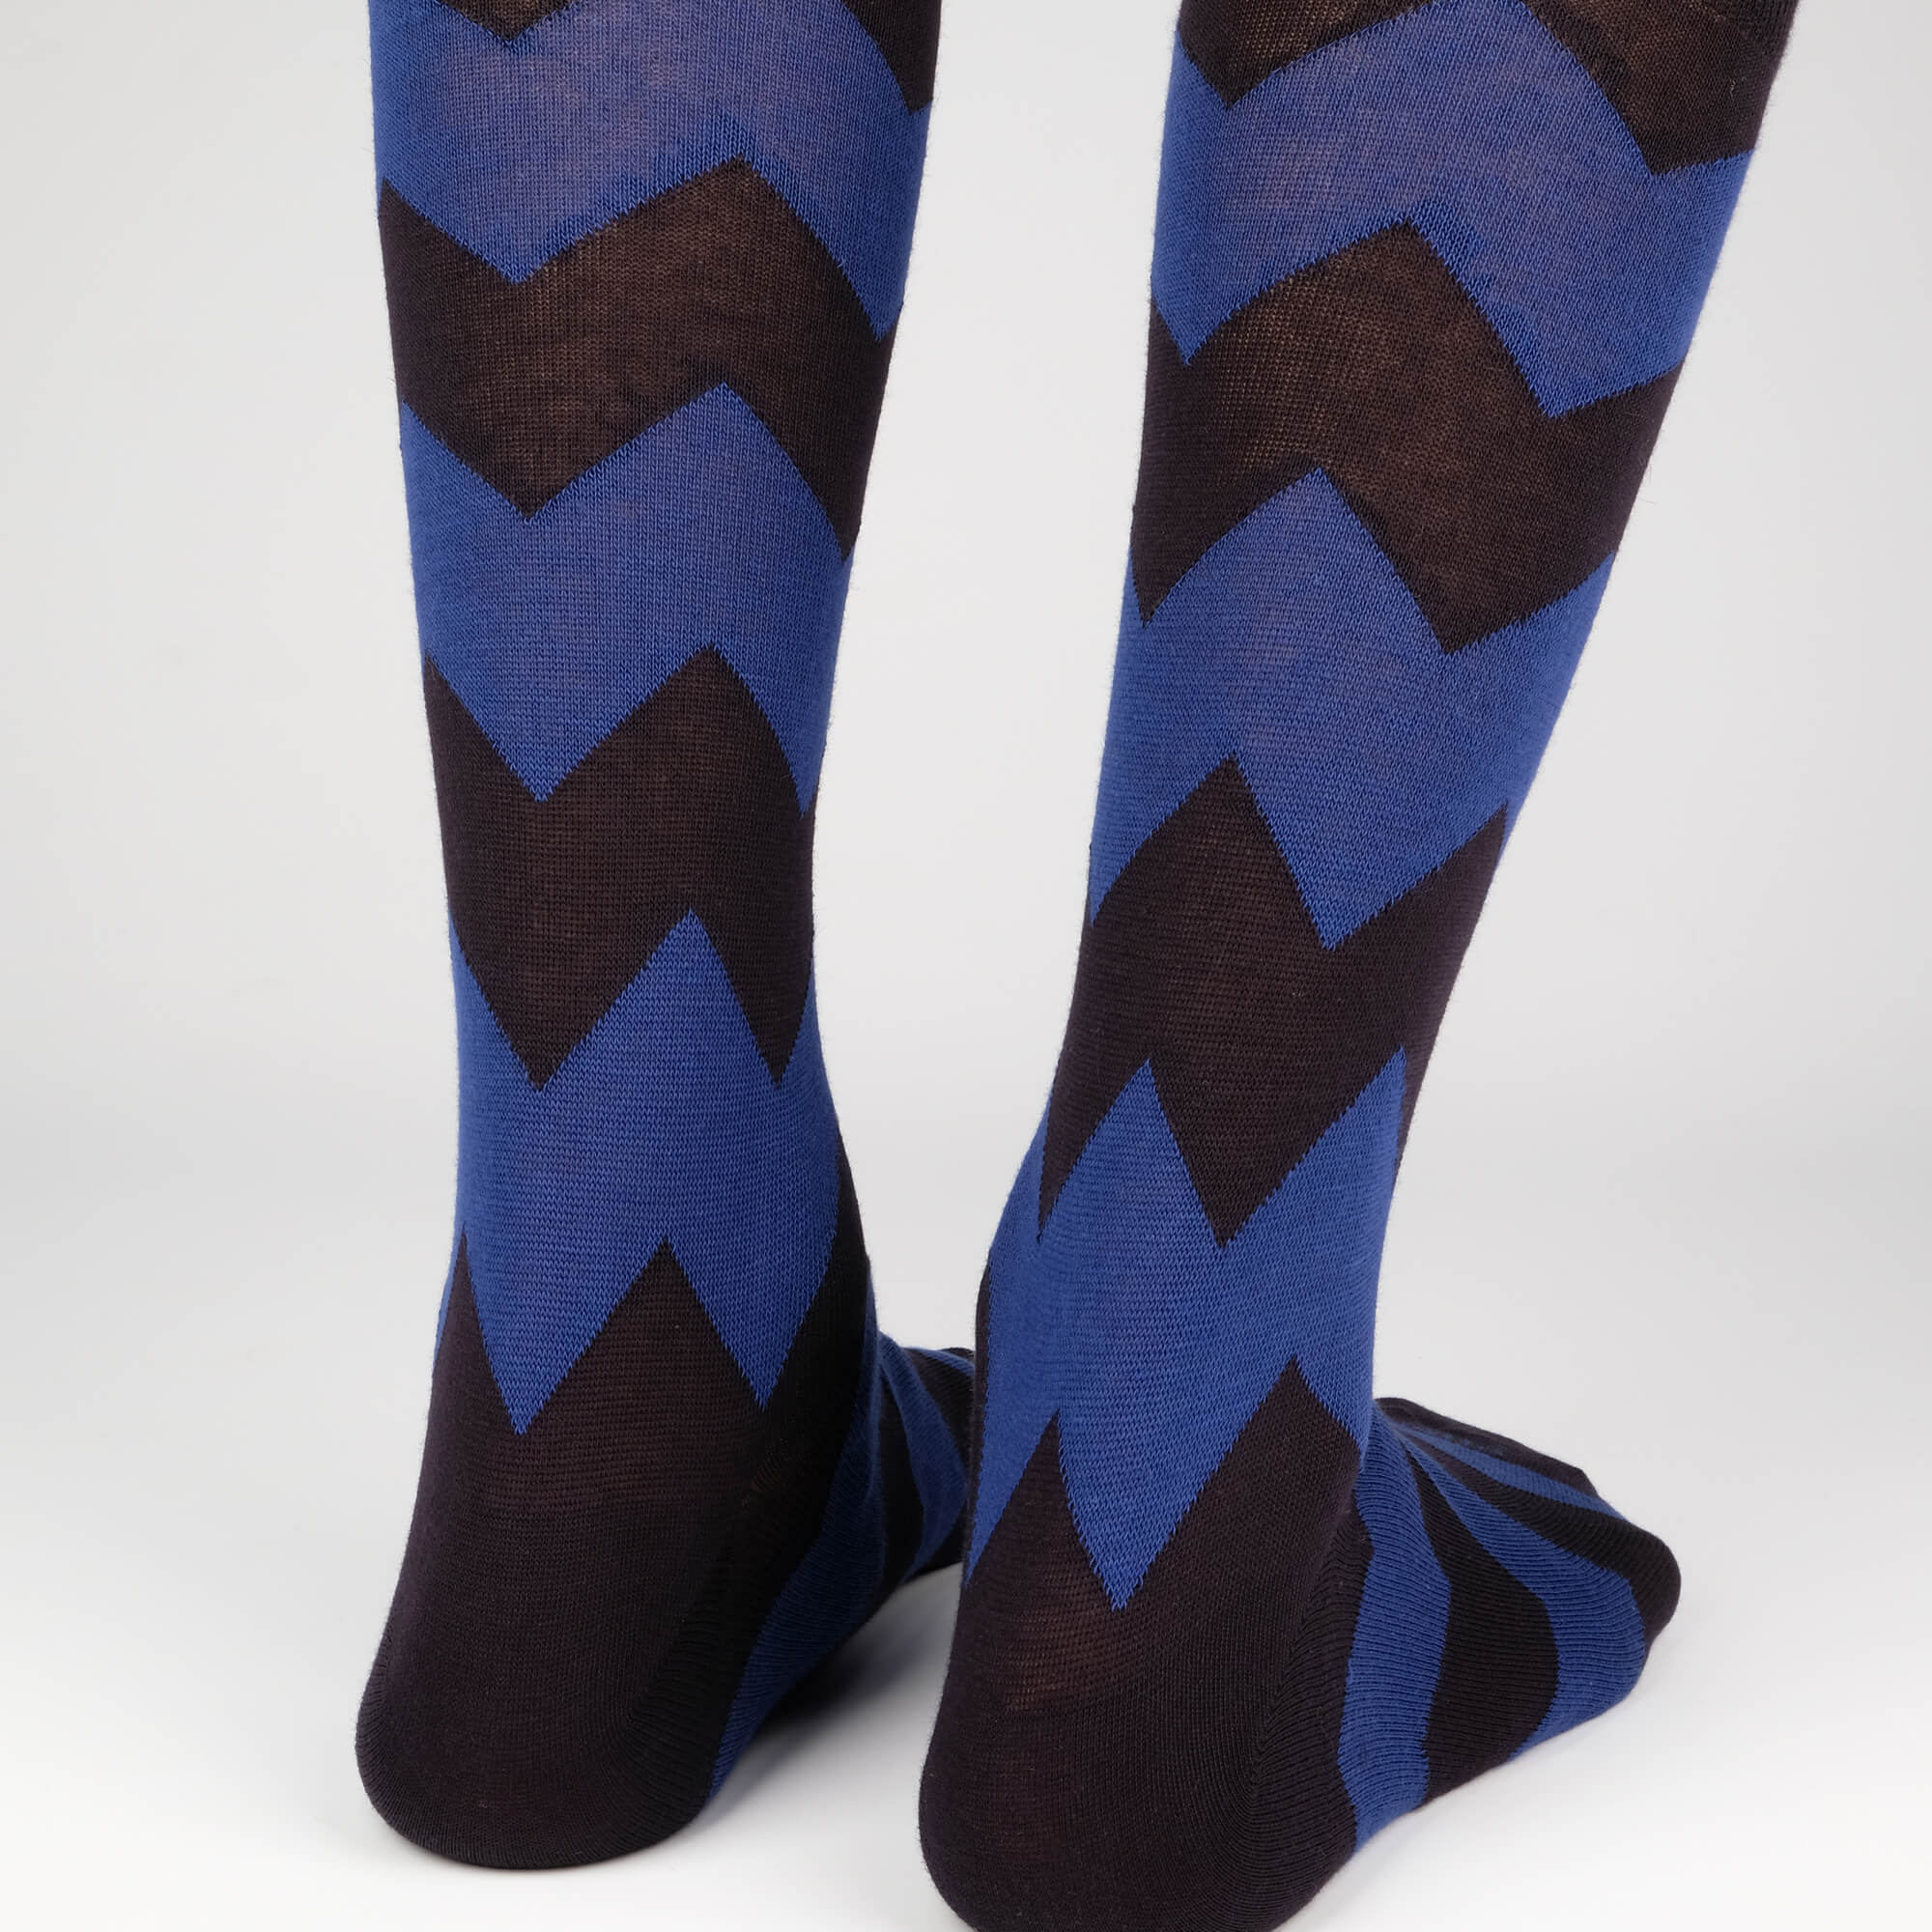 Mens Socks - Matterhorn Stripes - Dark Blue⎪Etiquette Clothiers